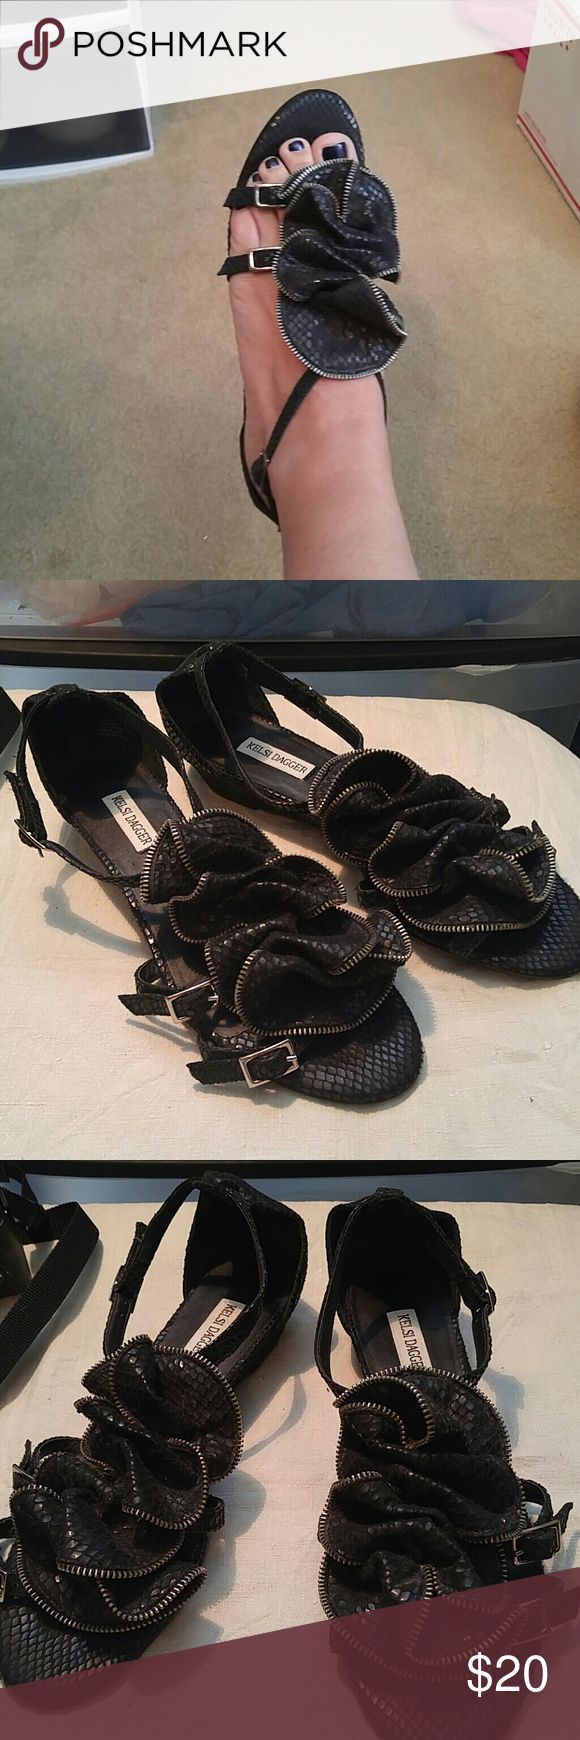 Kelsi Dagger Black Reptile Print Ruffled Sandals 9 Kelsi Dagger Black Reptile Print Ruffled Sandals. Size 9. Preowned but in great shape! Kelsi Dagger Shoes Sandals